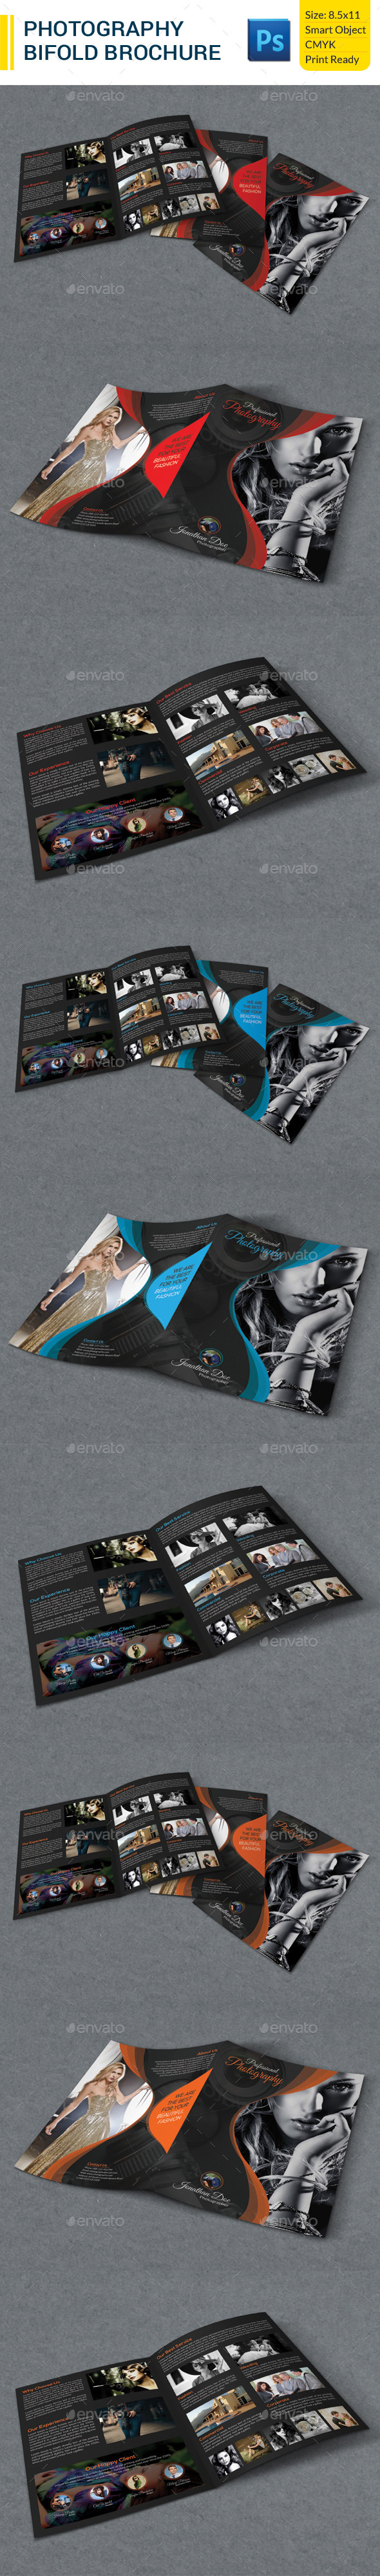 GraphicRiver Photography Bifold Brochure 9537700